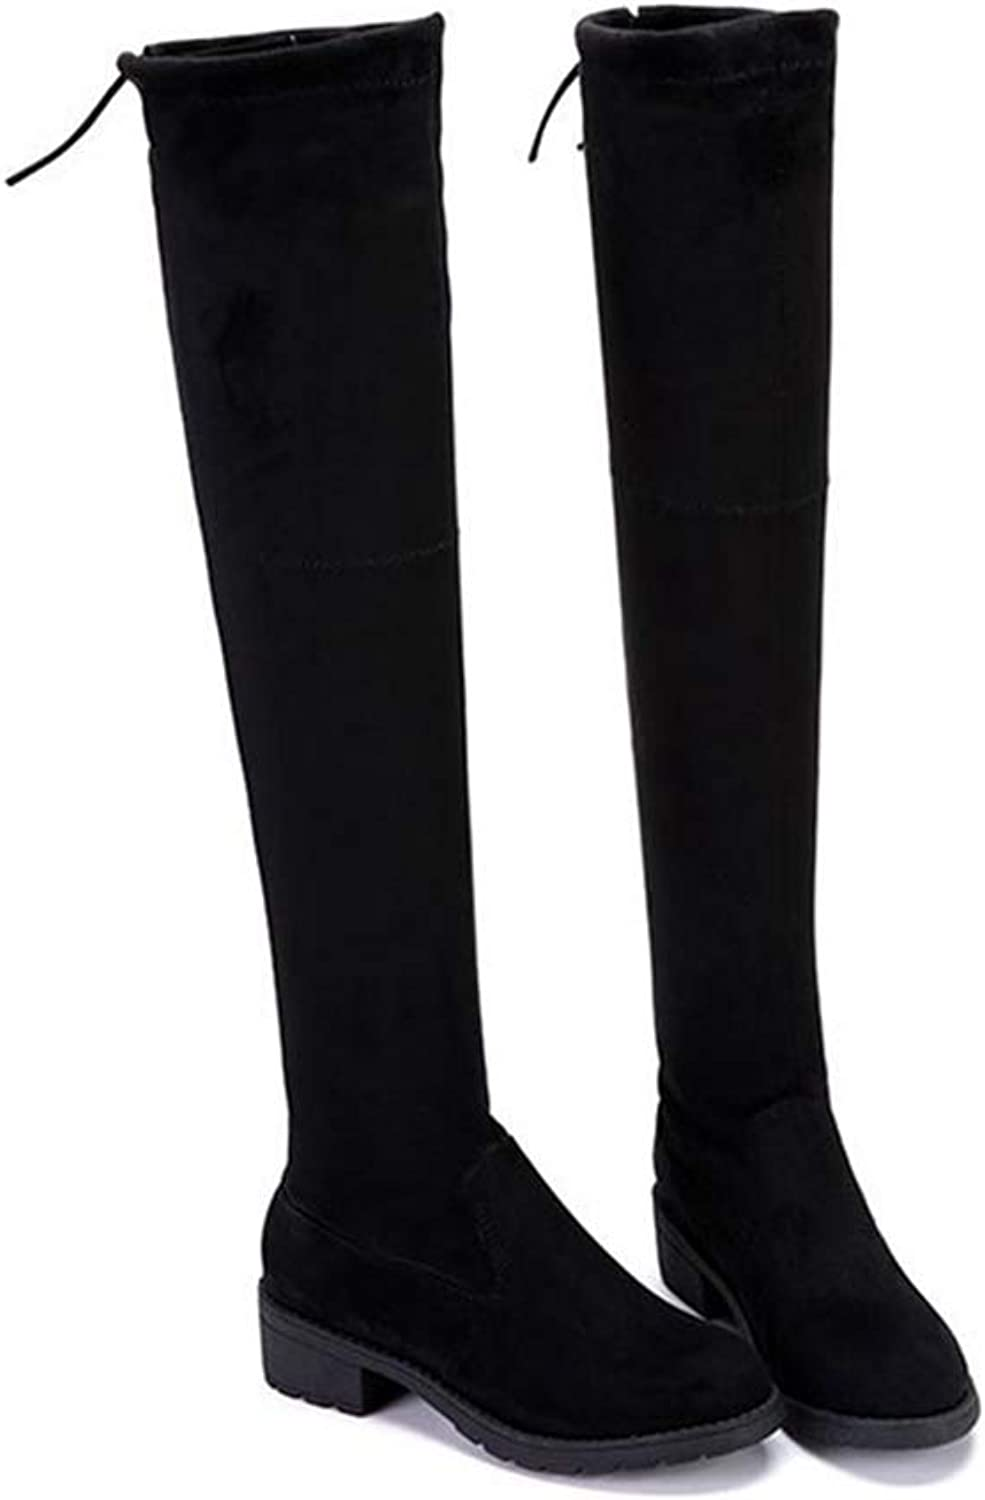 Knee High Boots Winter Fashion Style Stretch Long shoes Woman Elastic Boots Platform Square Heel shoes